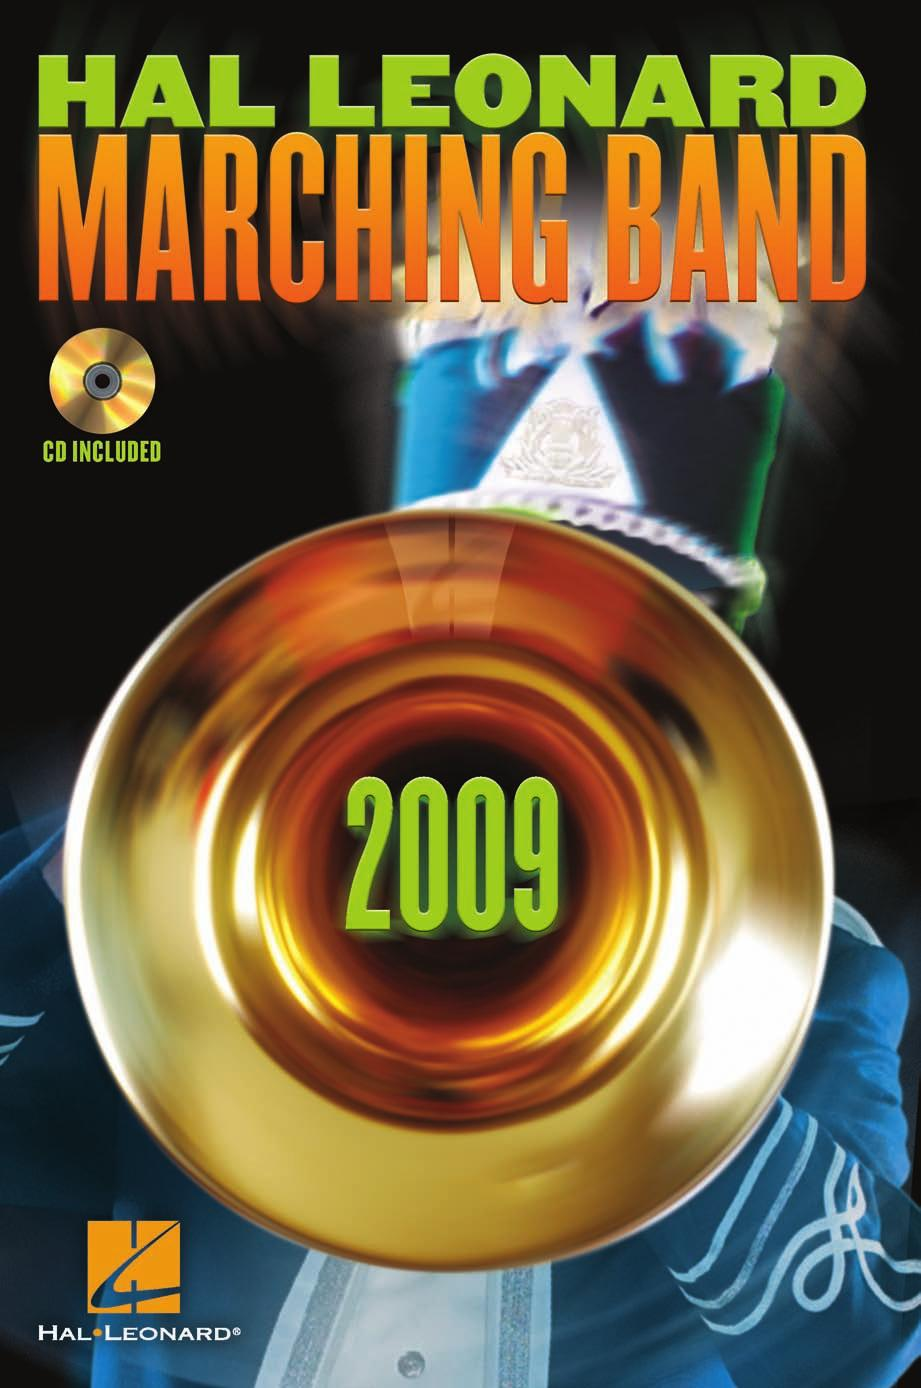 MARCHING BAND HAL LEONARD  Contemporary Marching Band Series